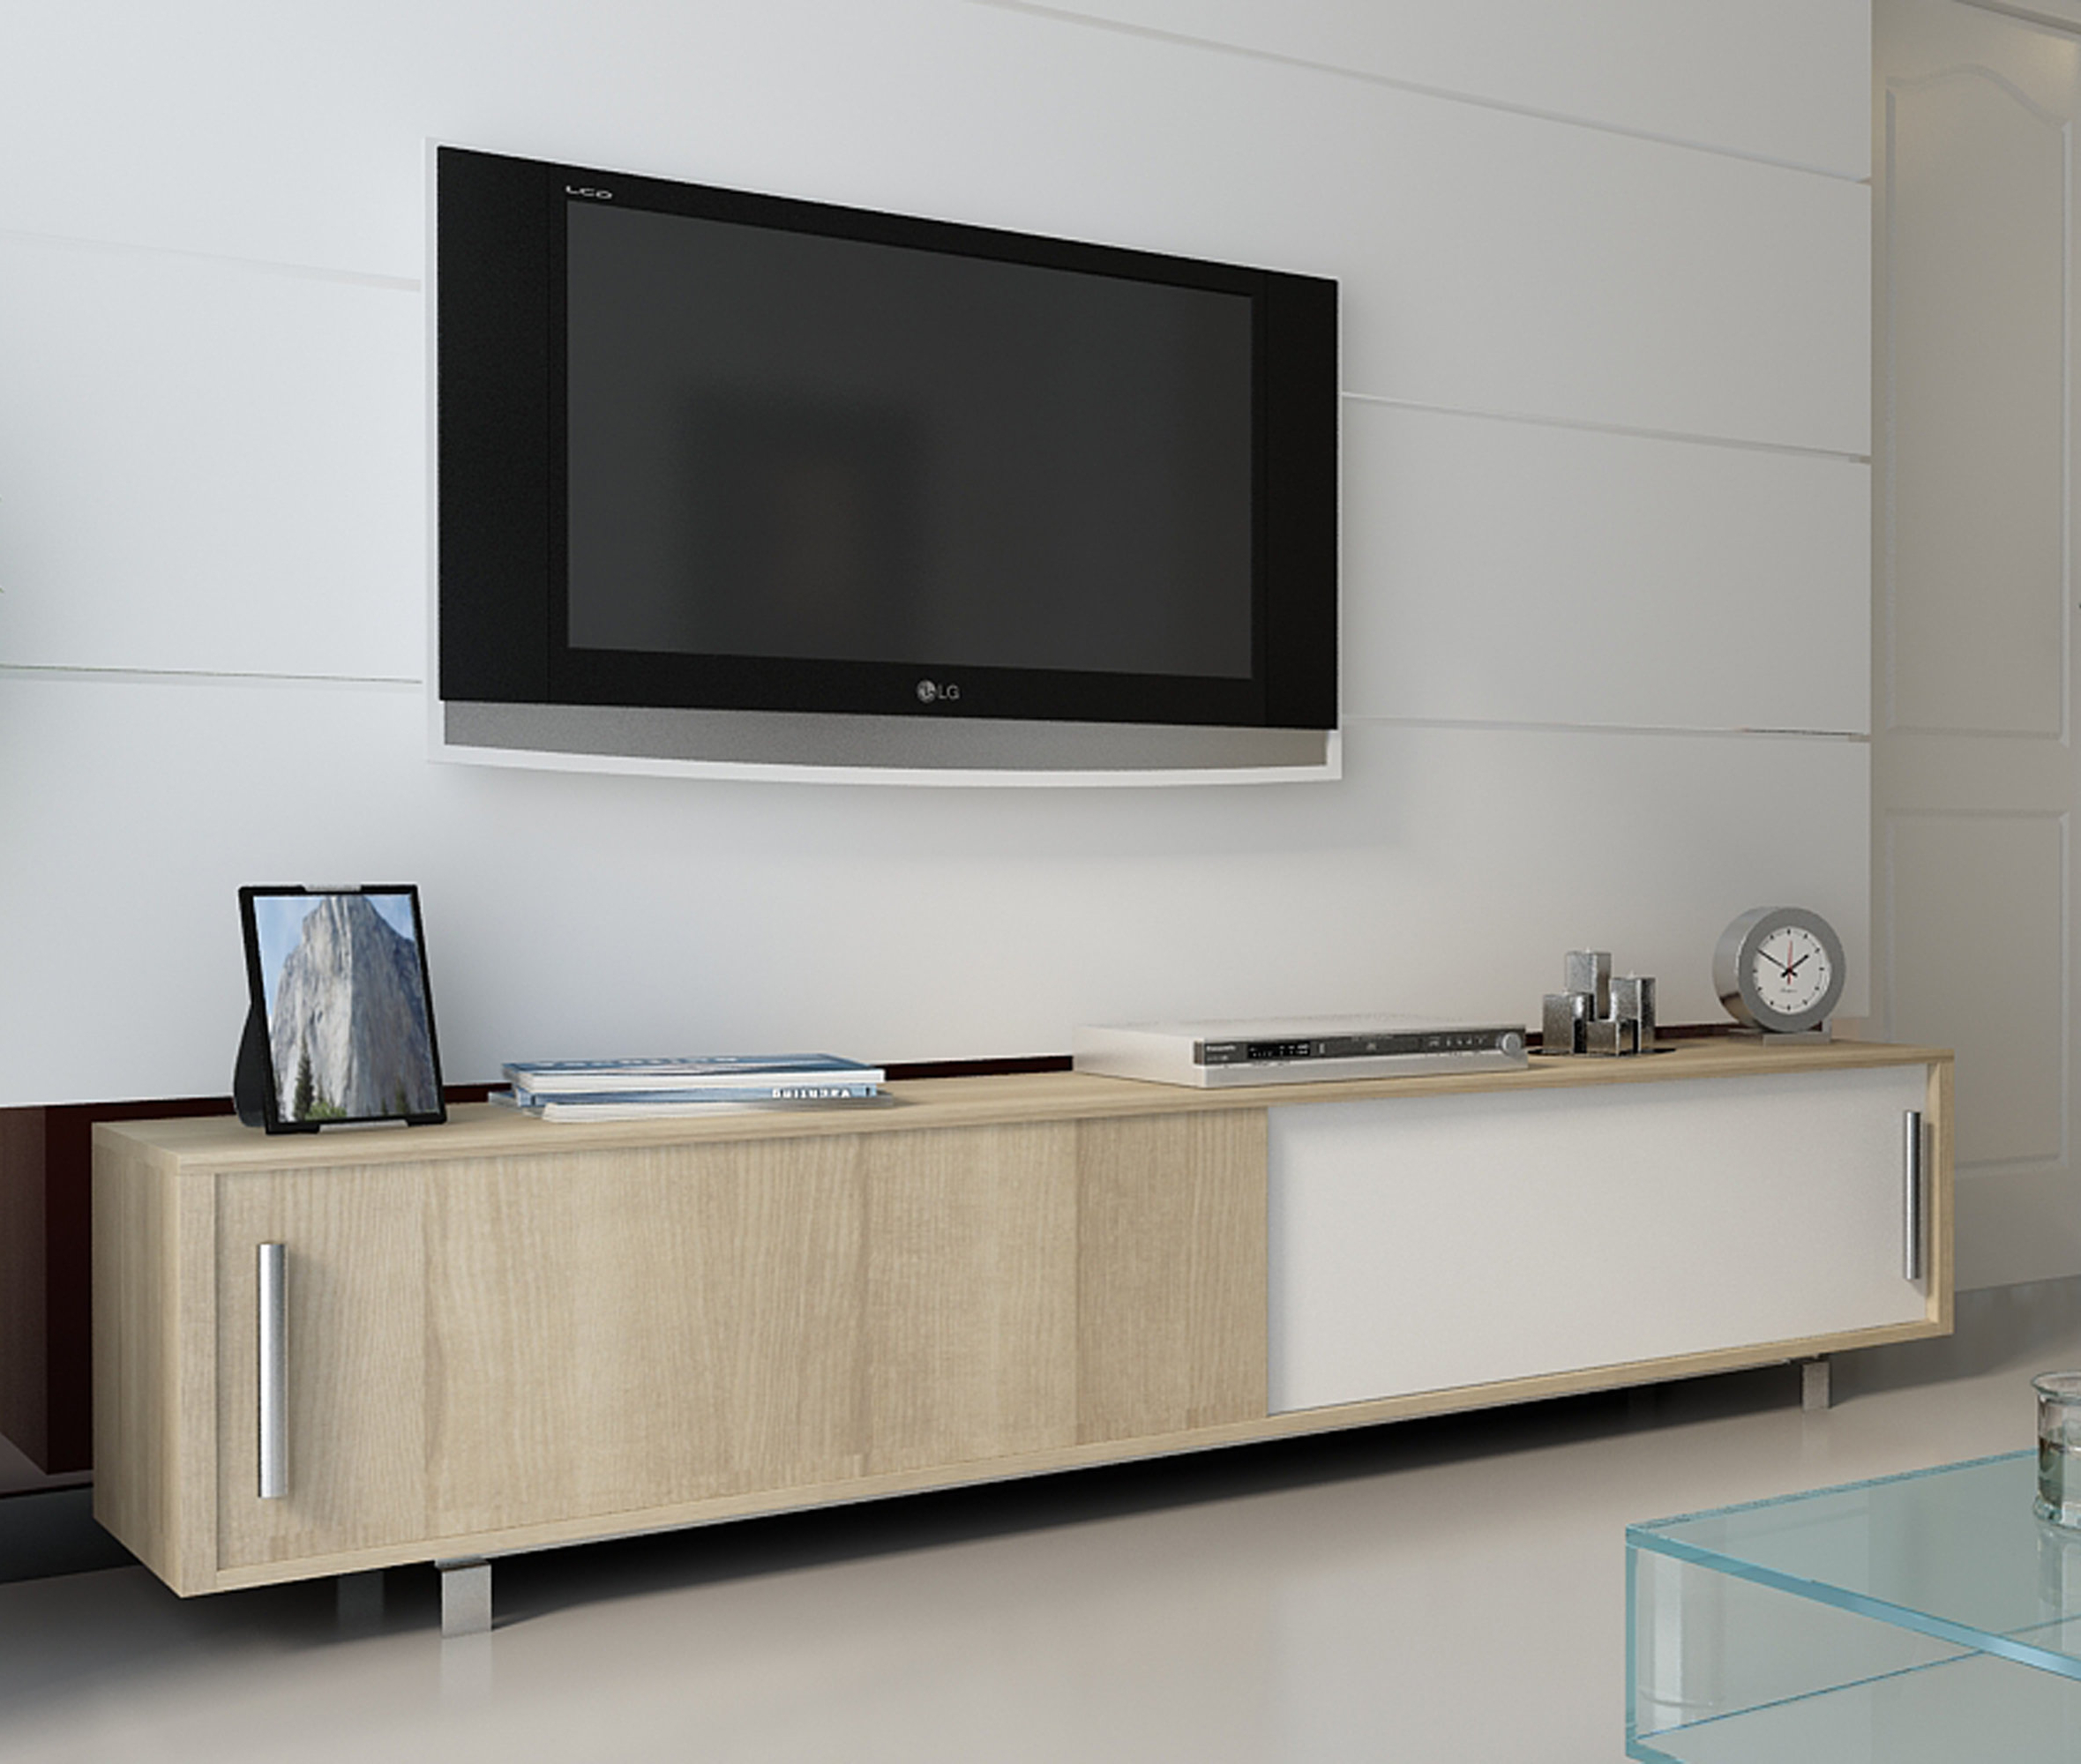 Allmodern Pertaining To Most Up To Date Modern Tv Stands For Flat Screens (Gallery 5 of 20)